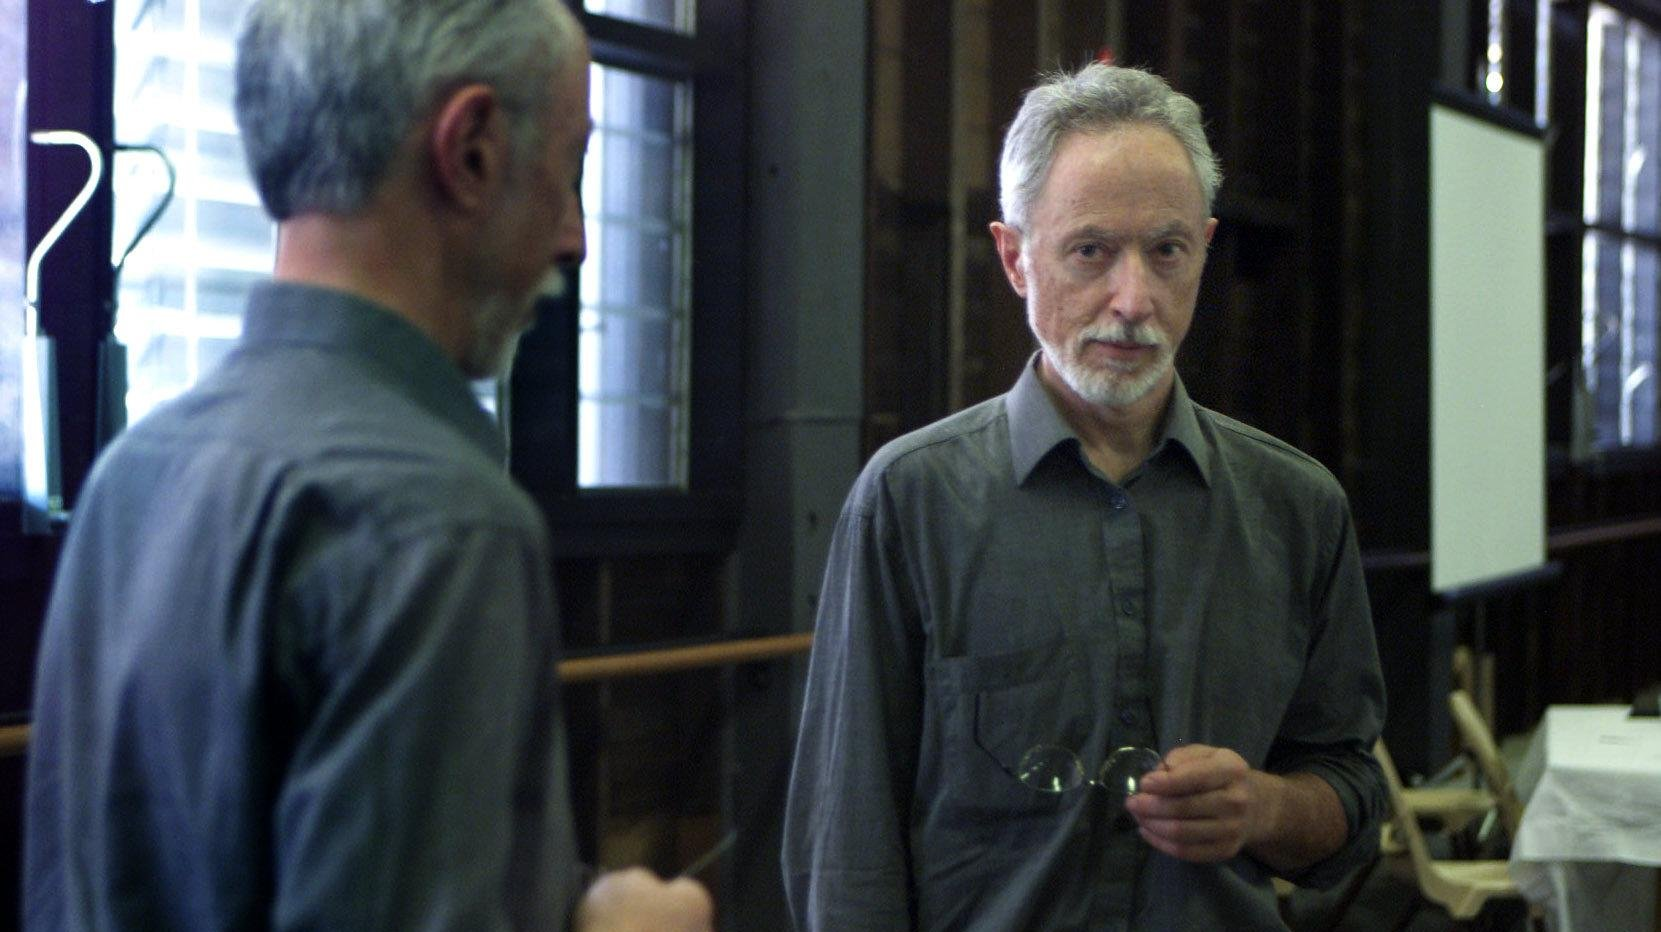 Author J.M Coetzee, 6 January 2003. THE SMH Picture by EDWINA PICKLES